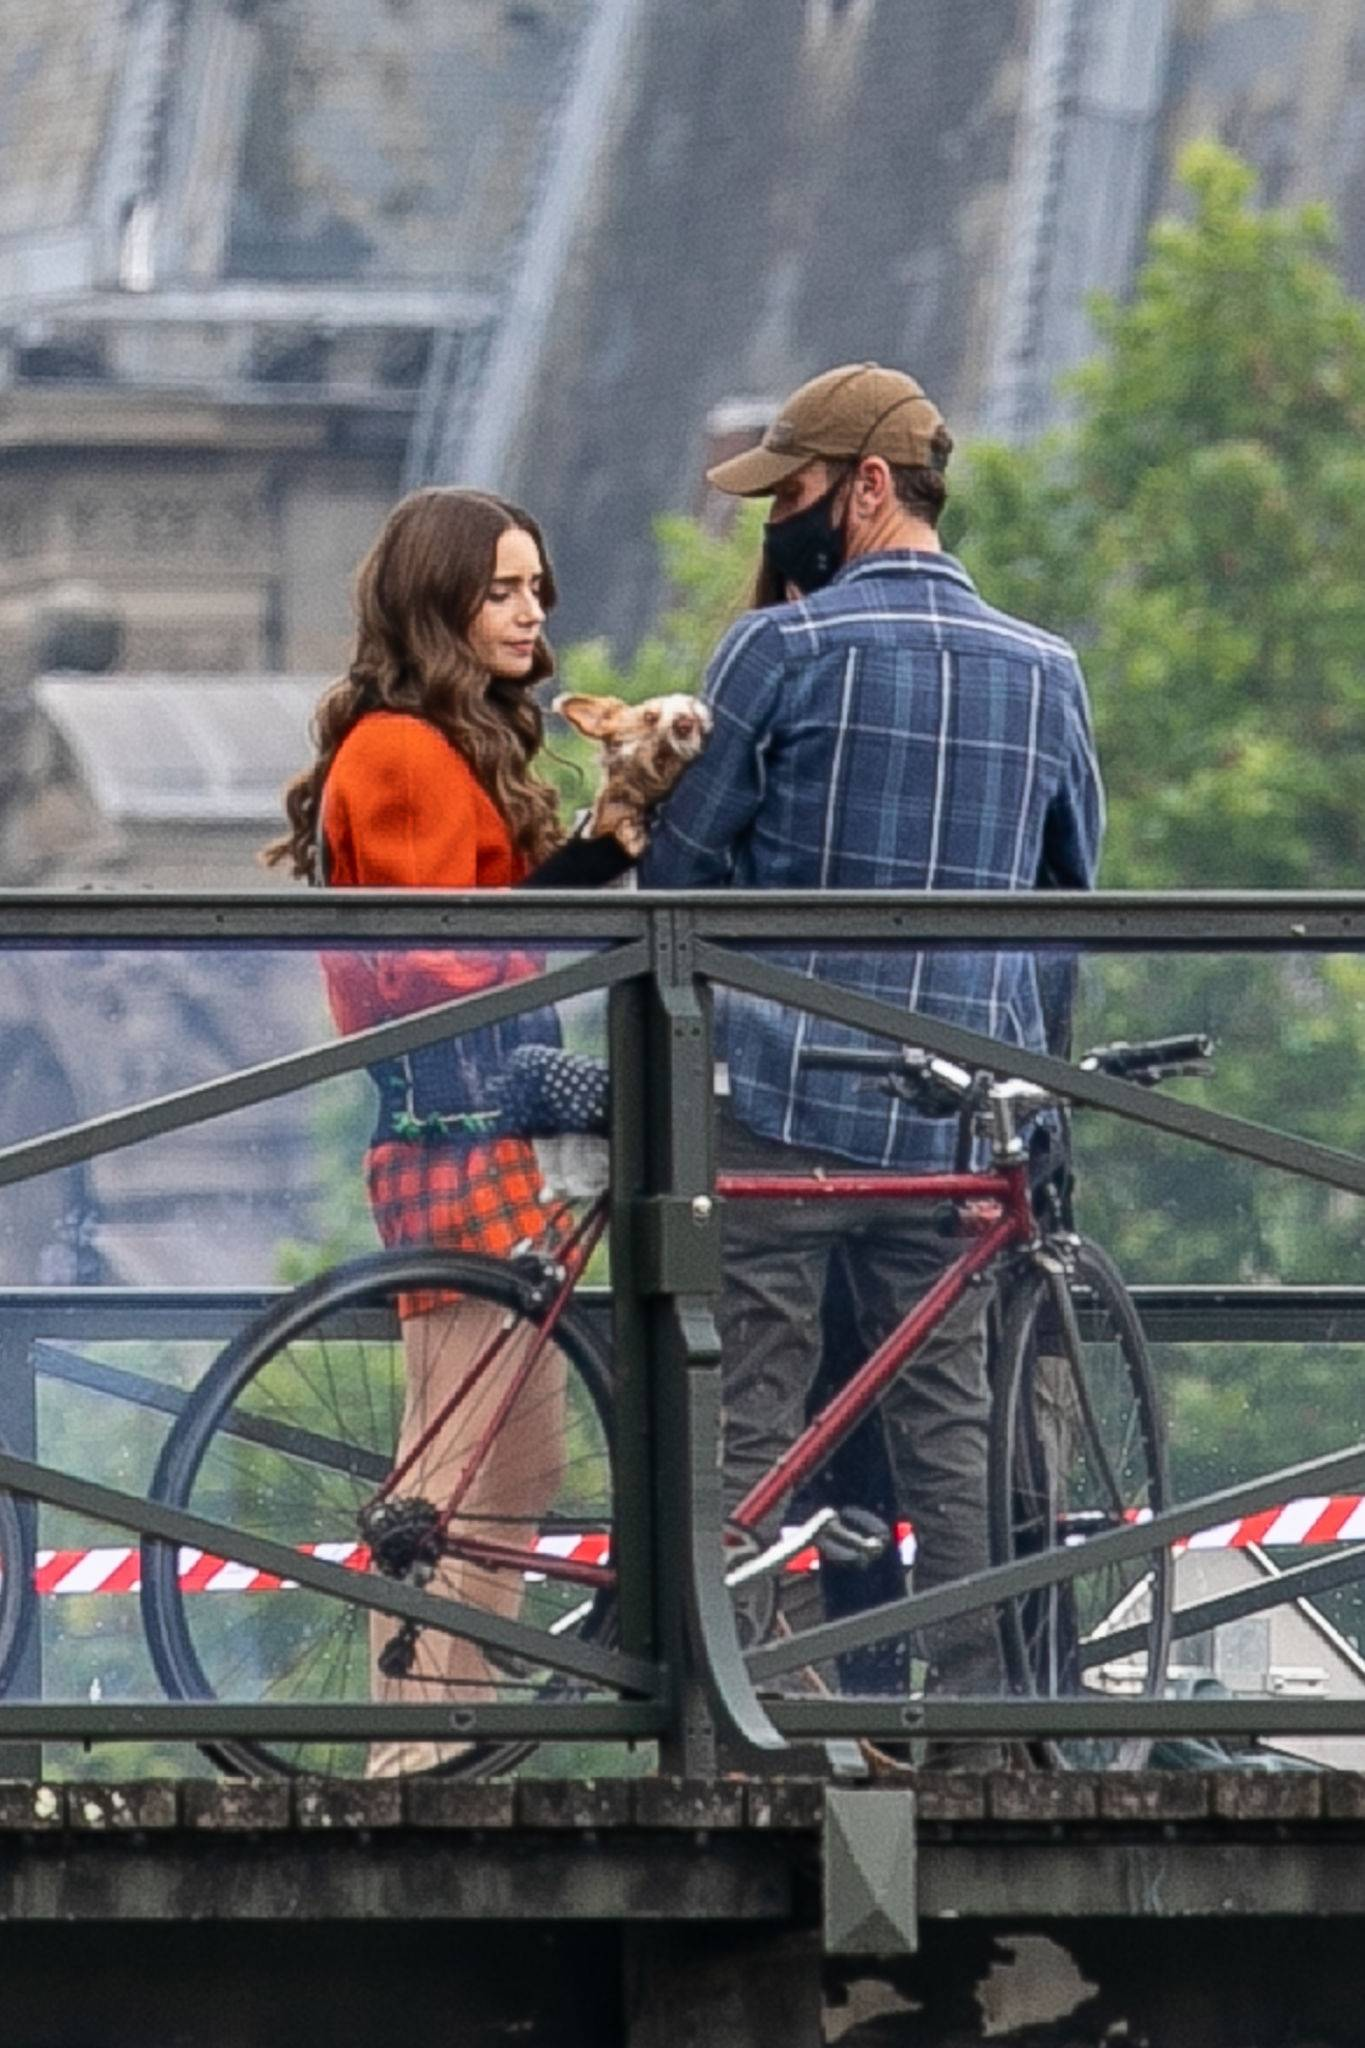 Lily Collins - With Charlie McDowell on the set of 'Emily in Paris' Season 2 in Paris